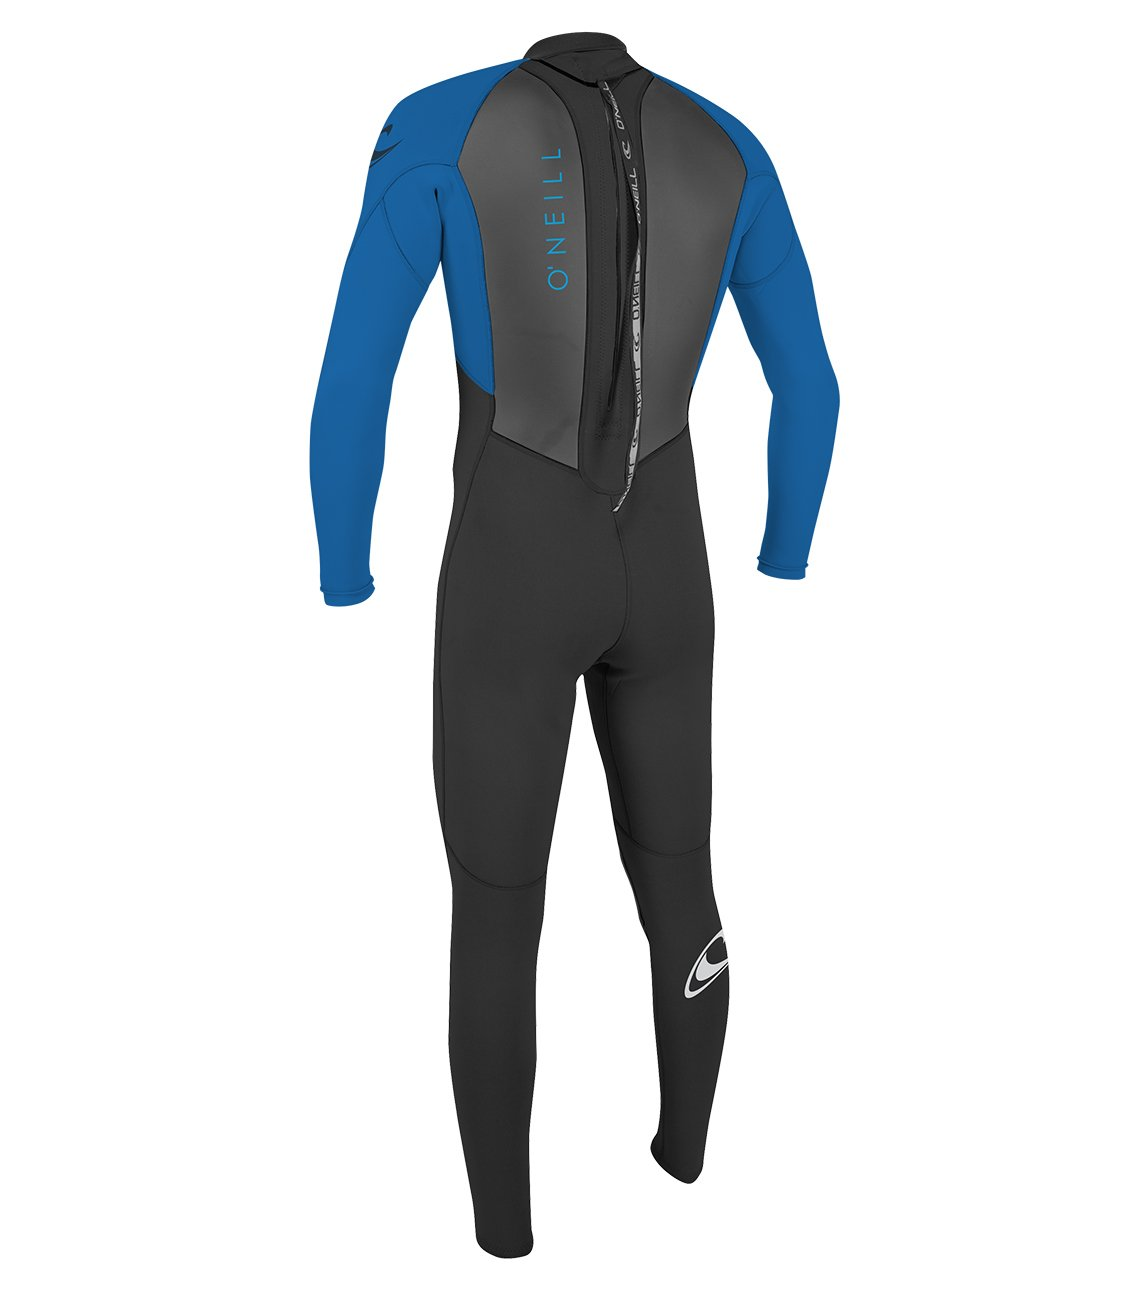 O'Neill Youth Reactor-2 3/2mm Back Zip Full Wetsuit, Black/Ocean, 4 by O'Neill Wetsuits (Image #2)